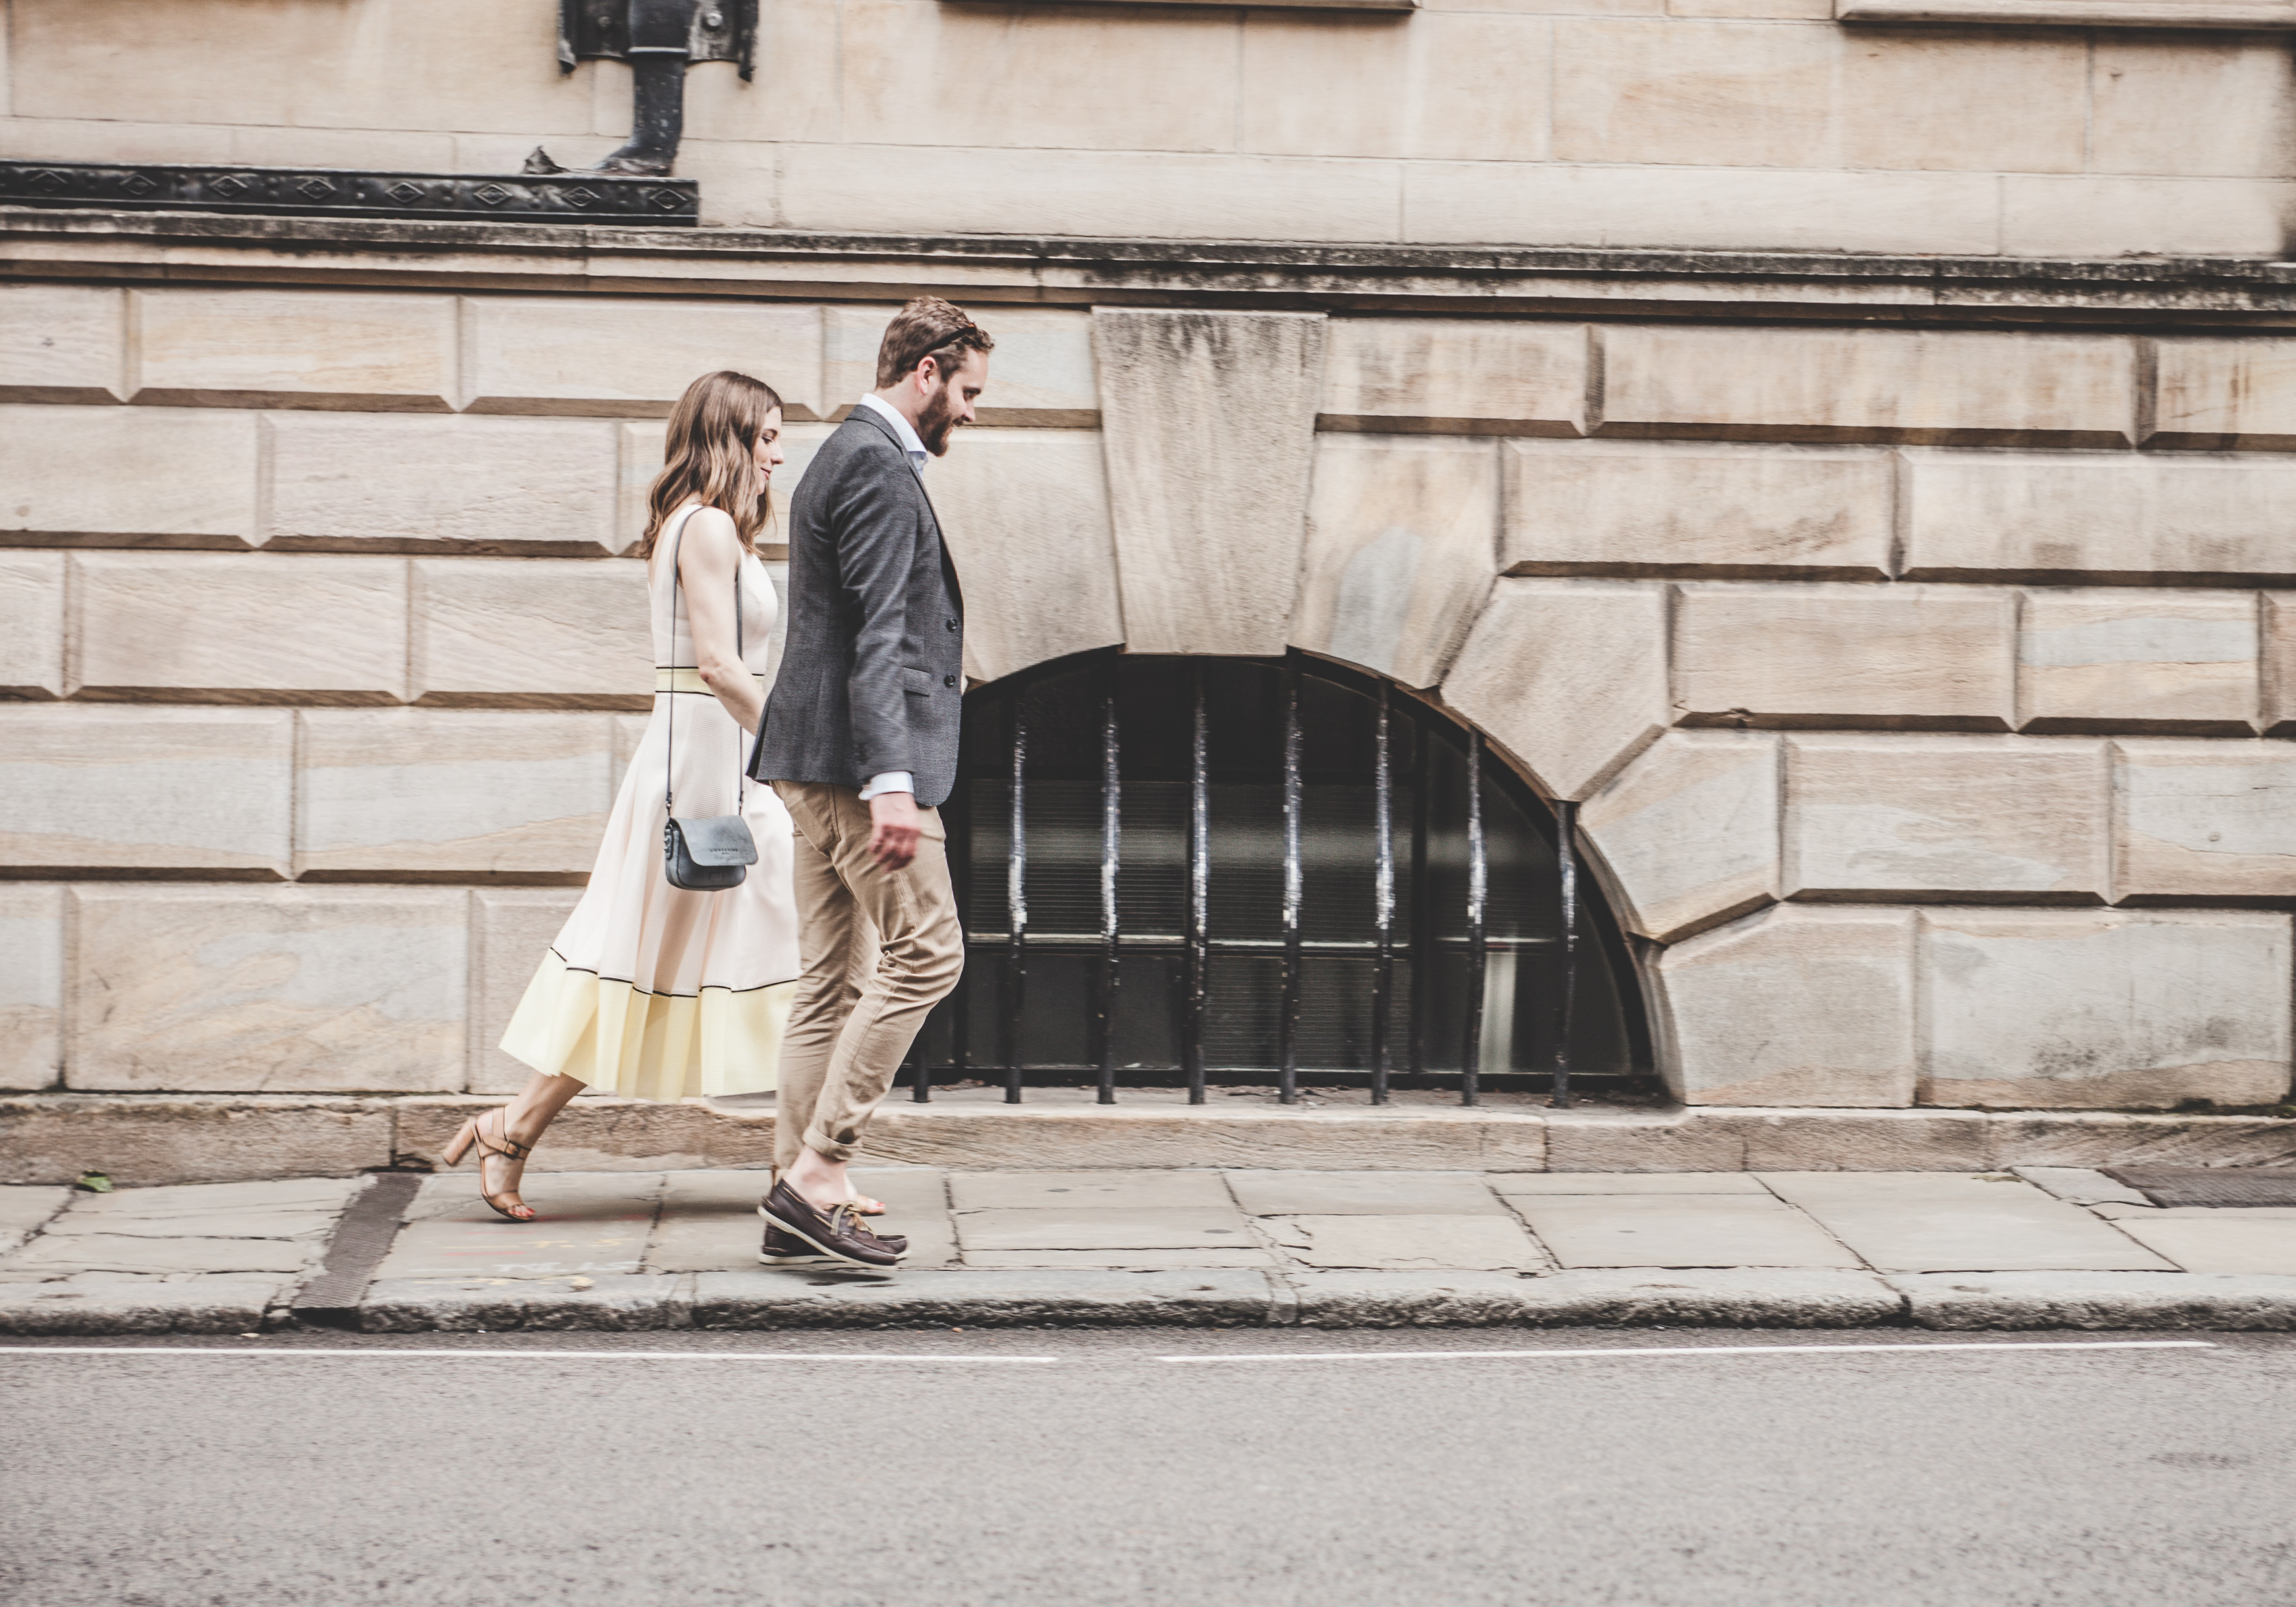 man and woman walking beside a road during daytime